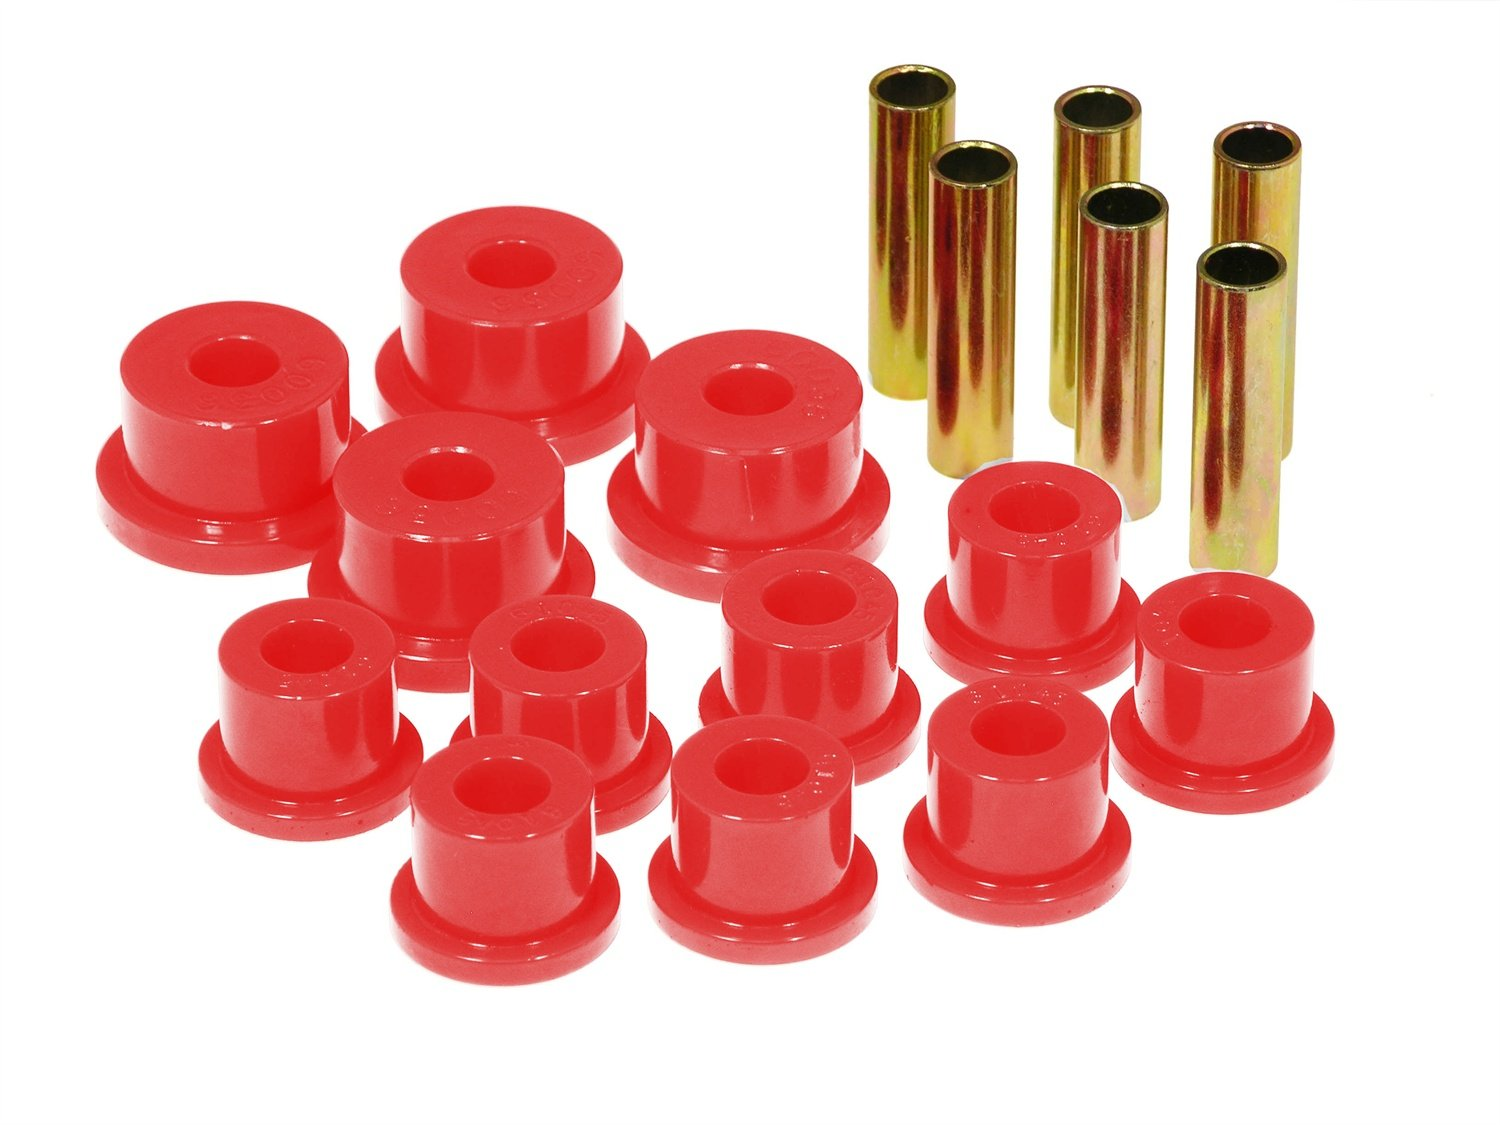 Prothane 17-1002 Red Spring Eye and Aftermarket Shackle Bushing Kit